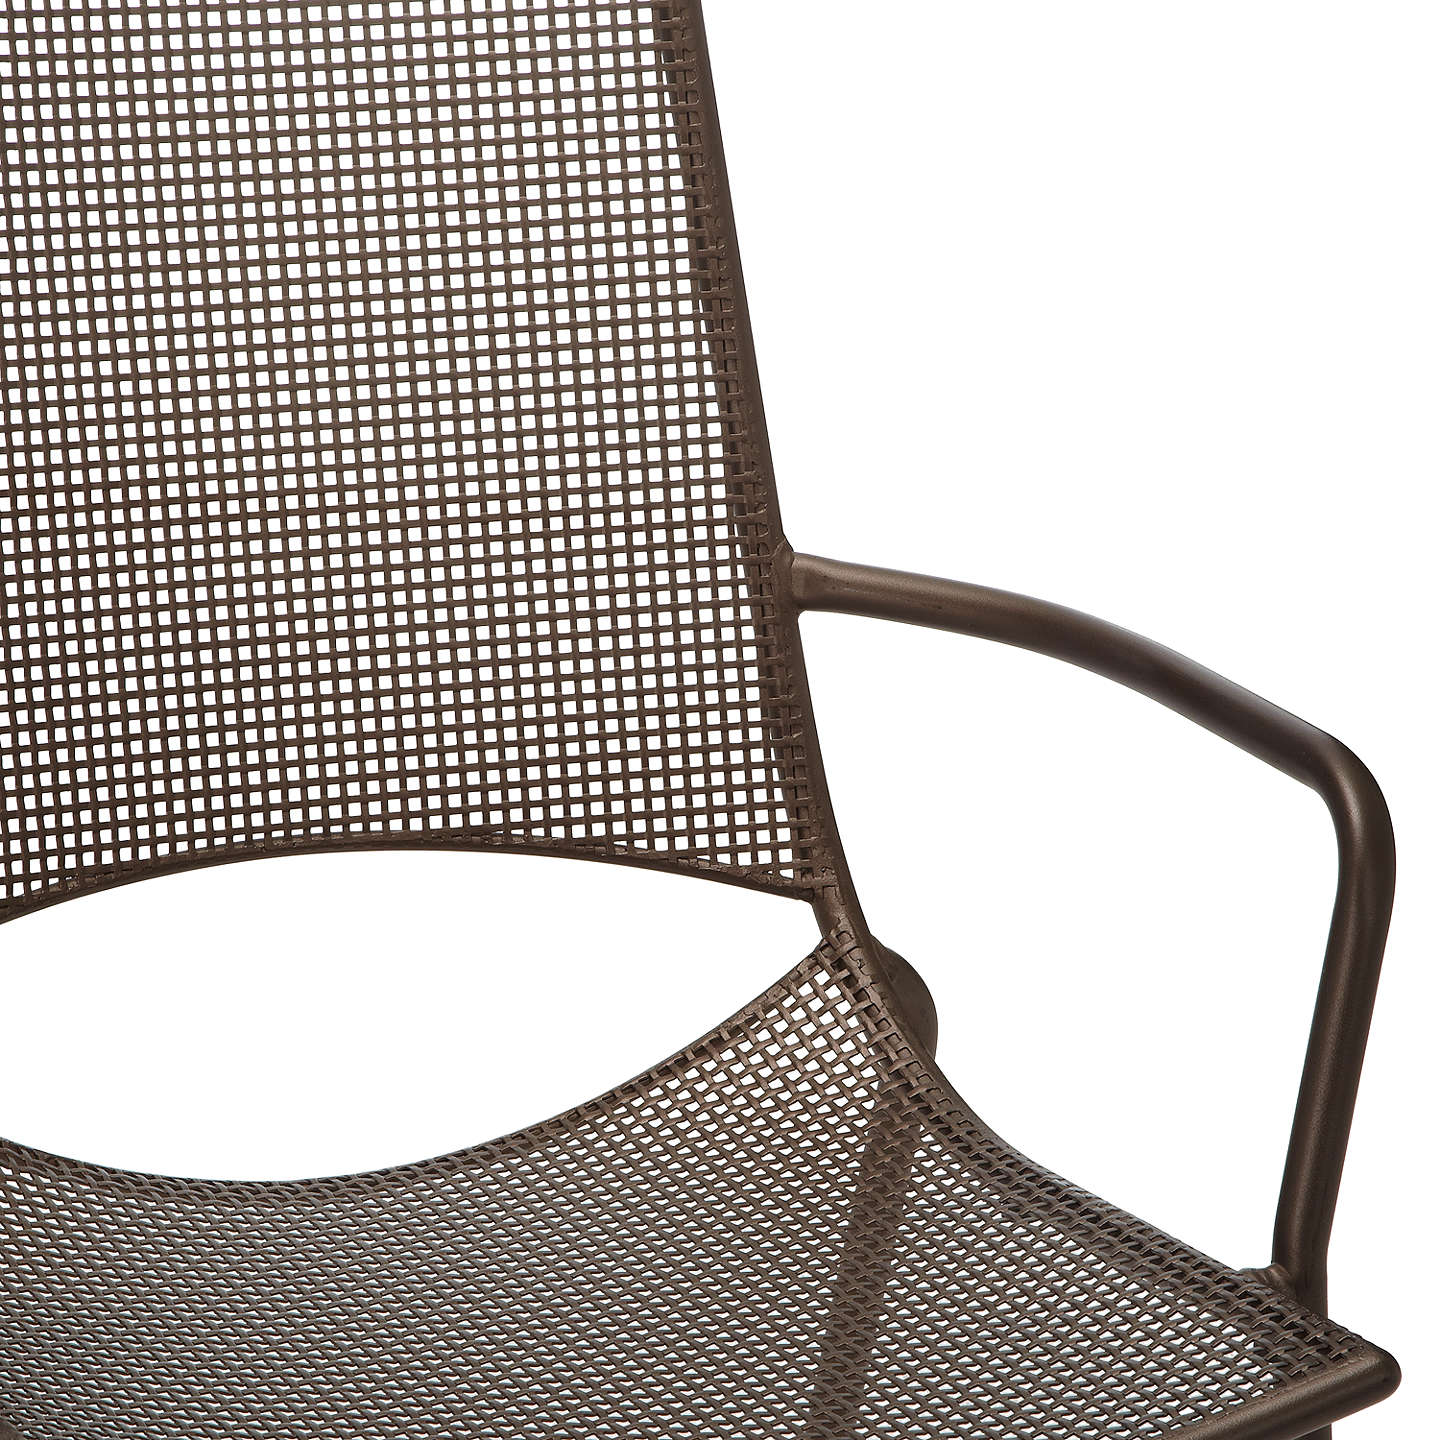 Garden Table And Chairs Set John Lewis: John Lewis Ala Mesh Extending Garden Dining Table And